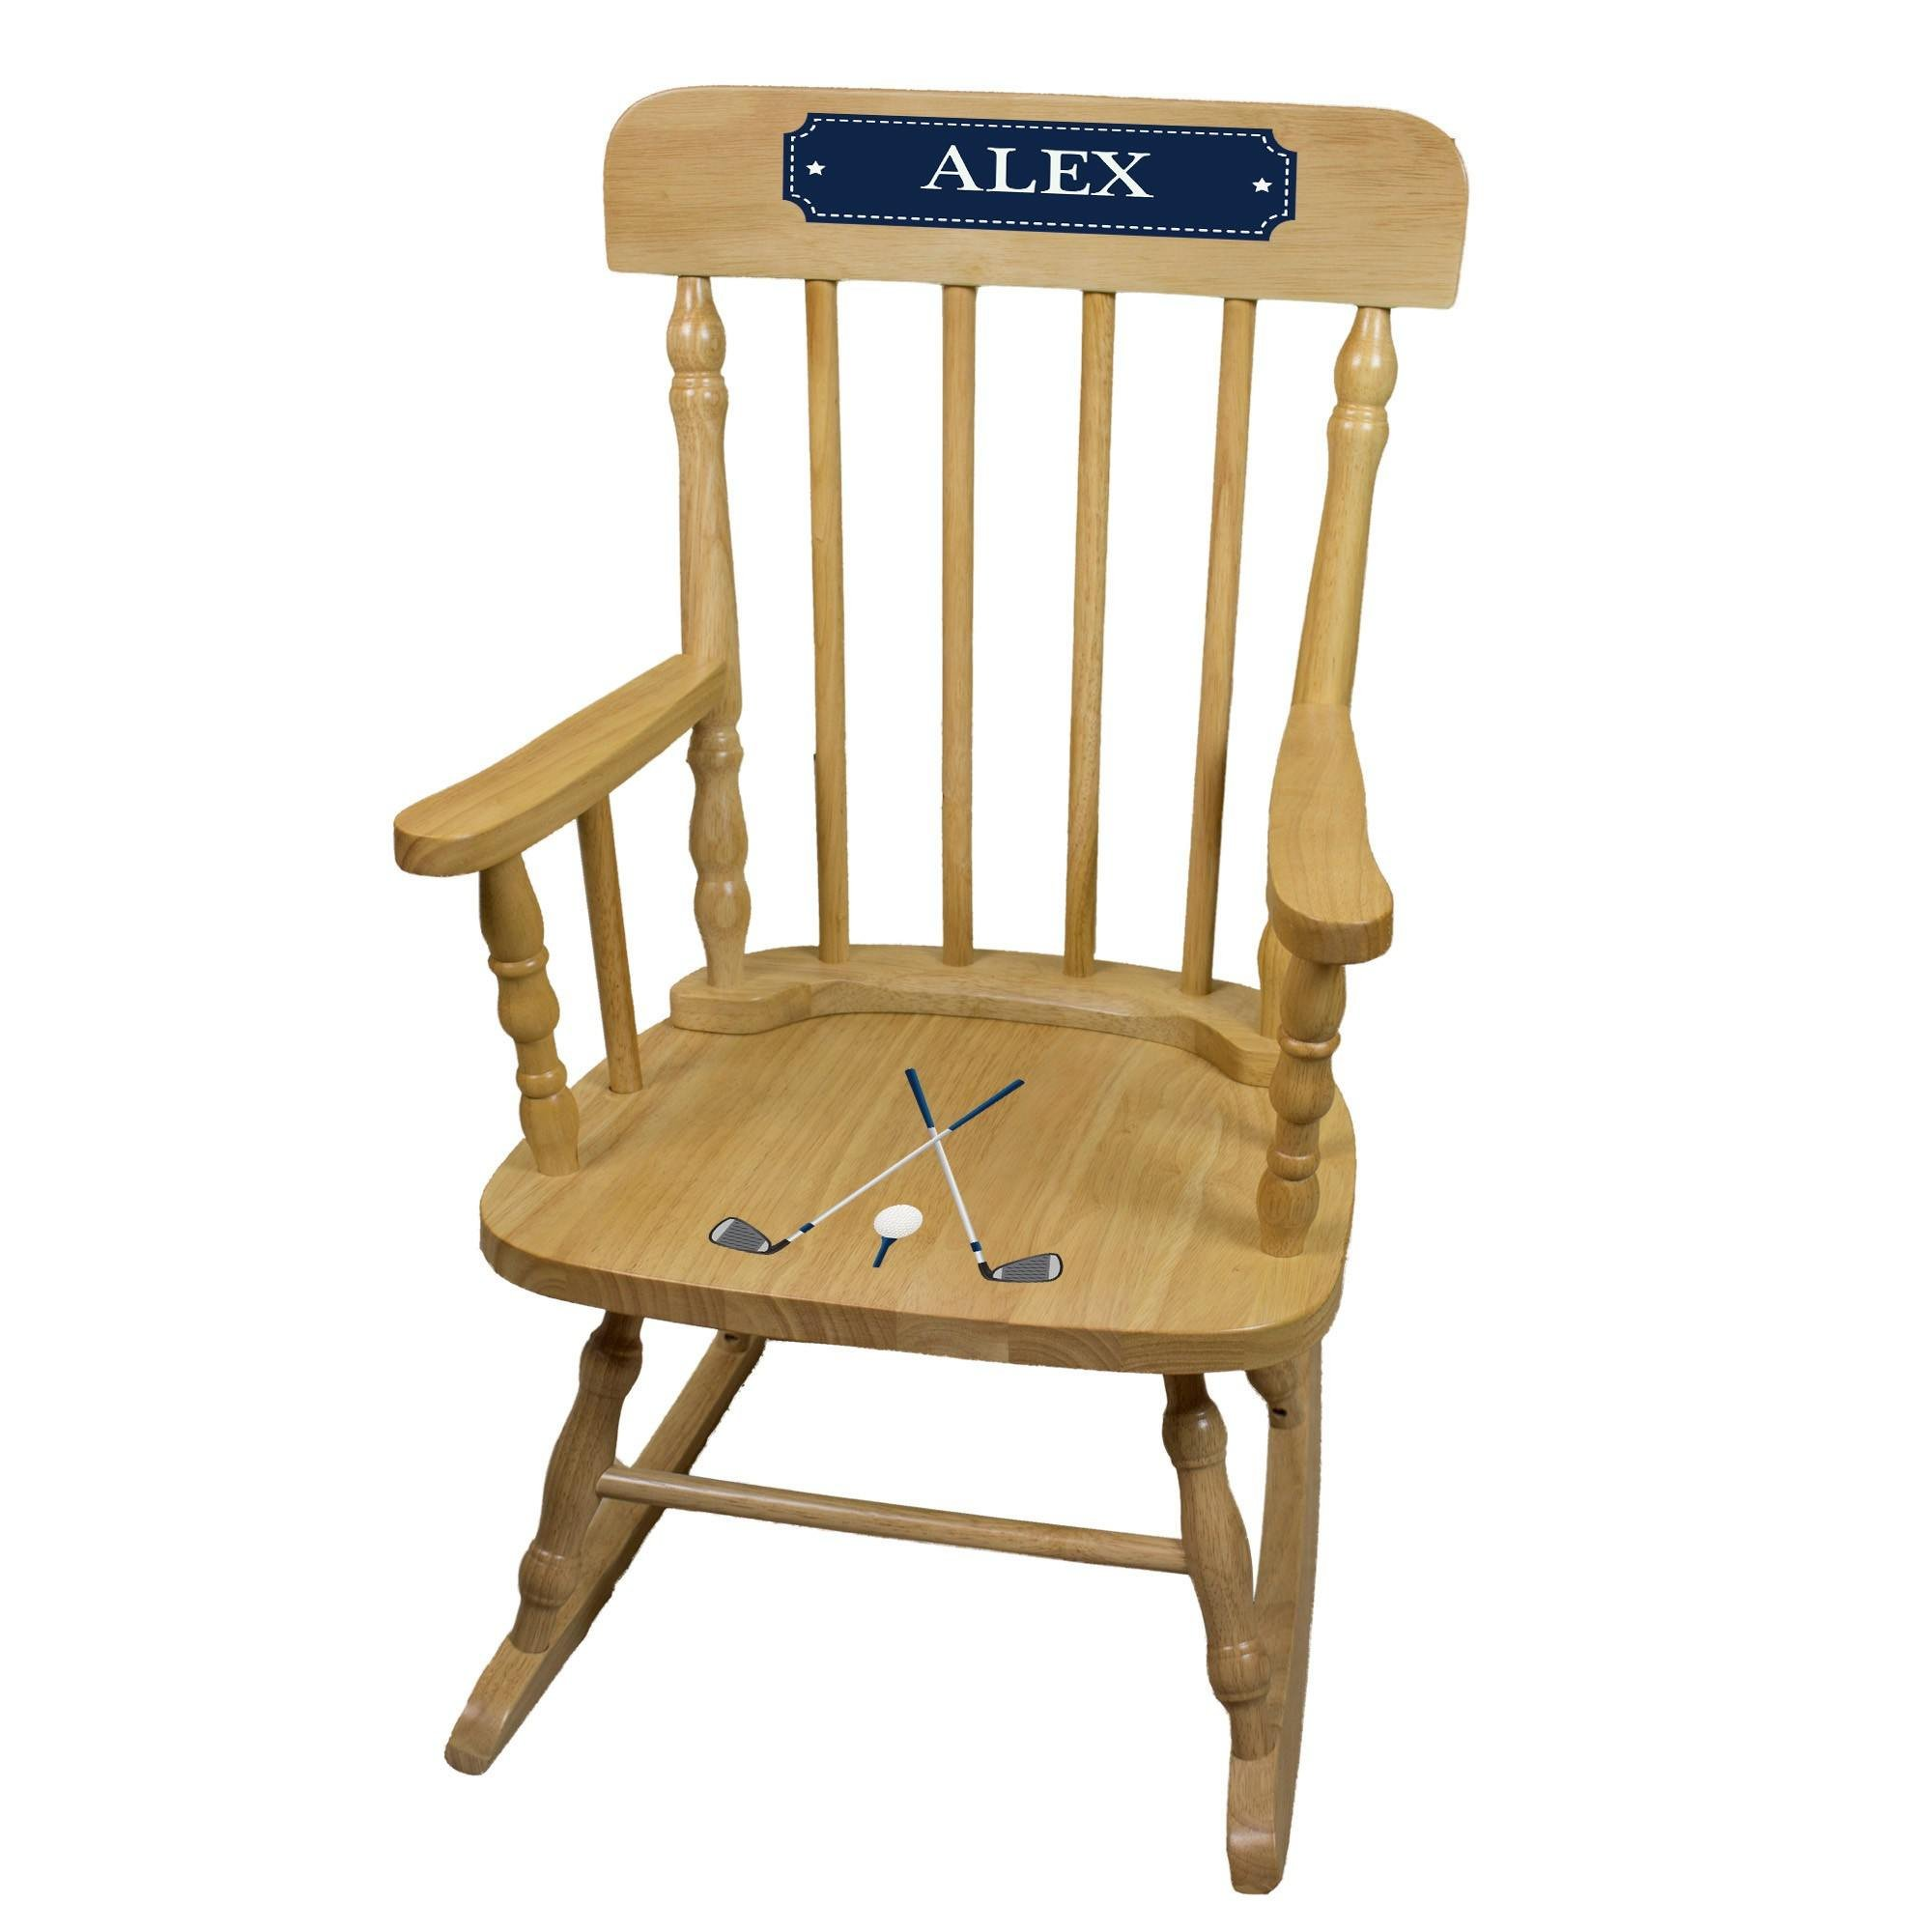 MyBambino Personalized Golf Natural Wooden Childrens Rocking Chair